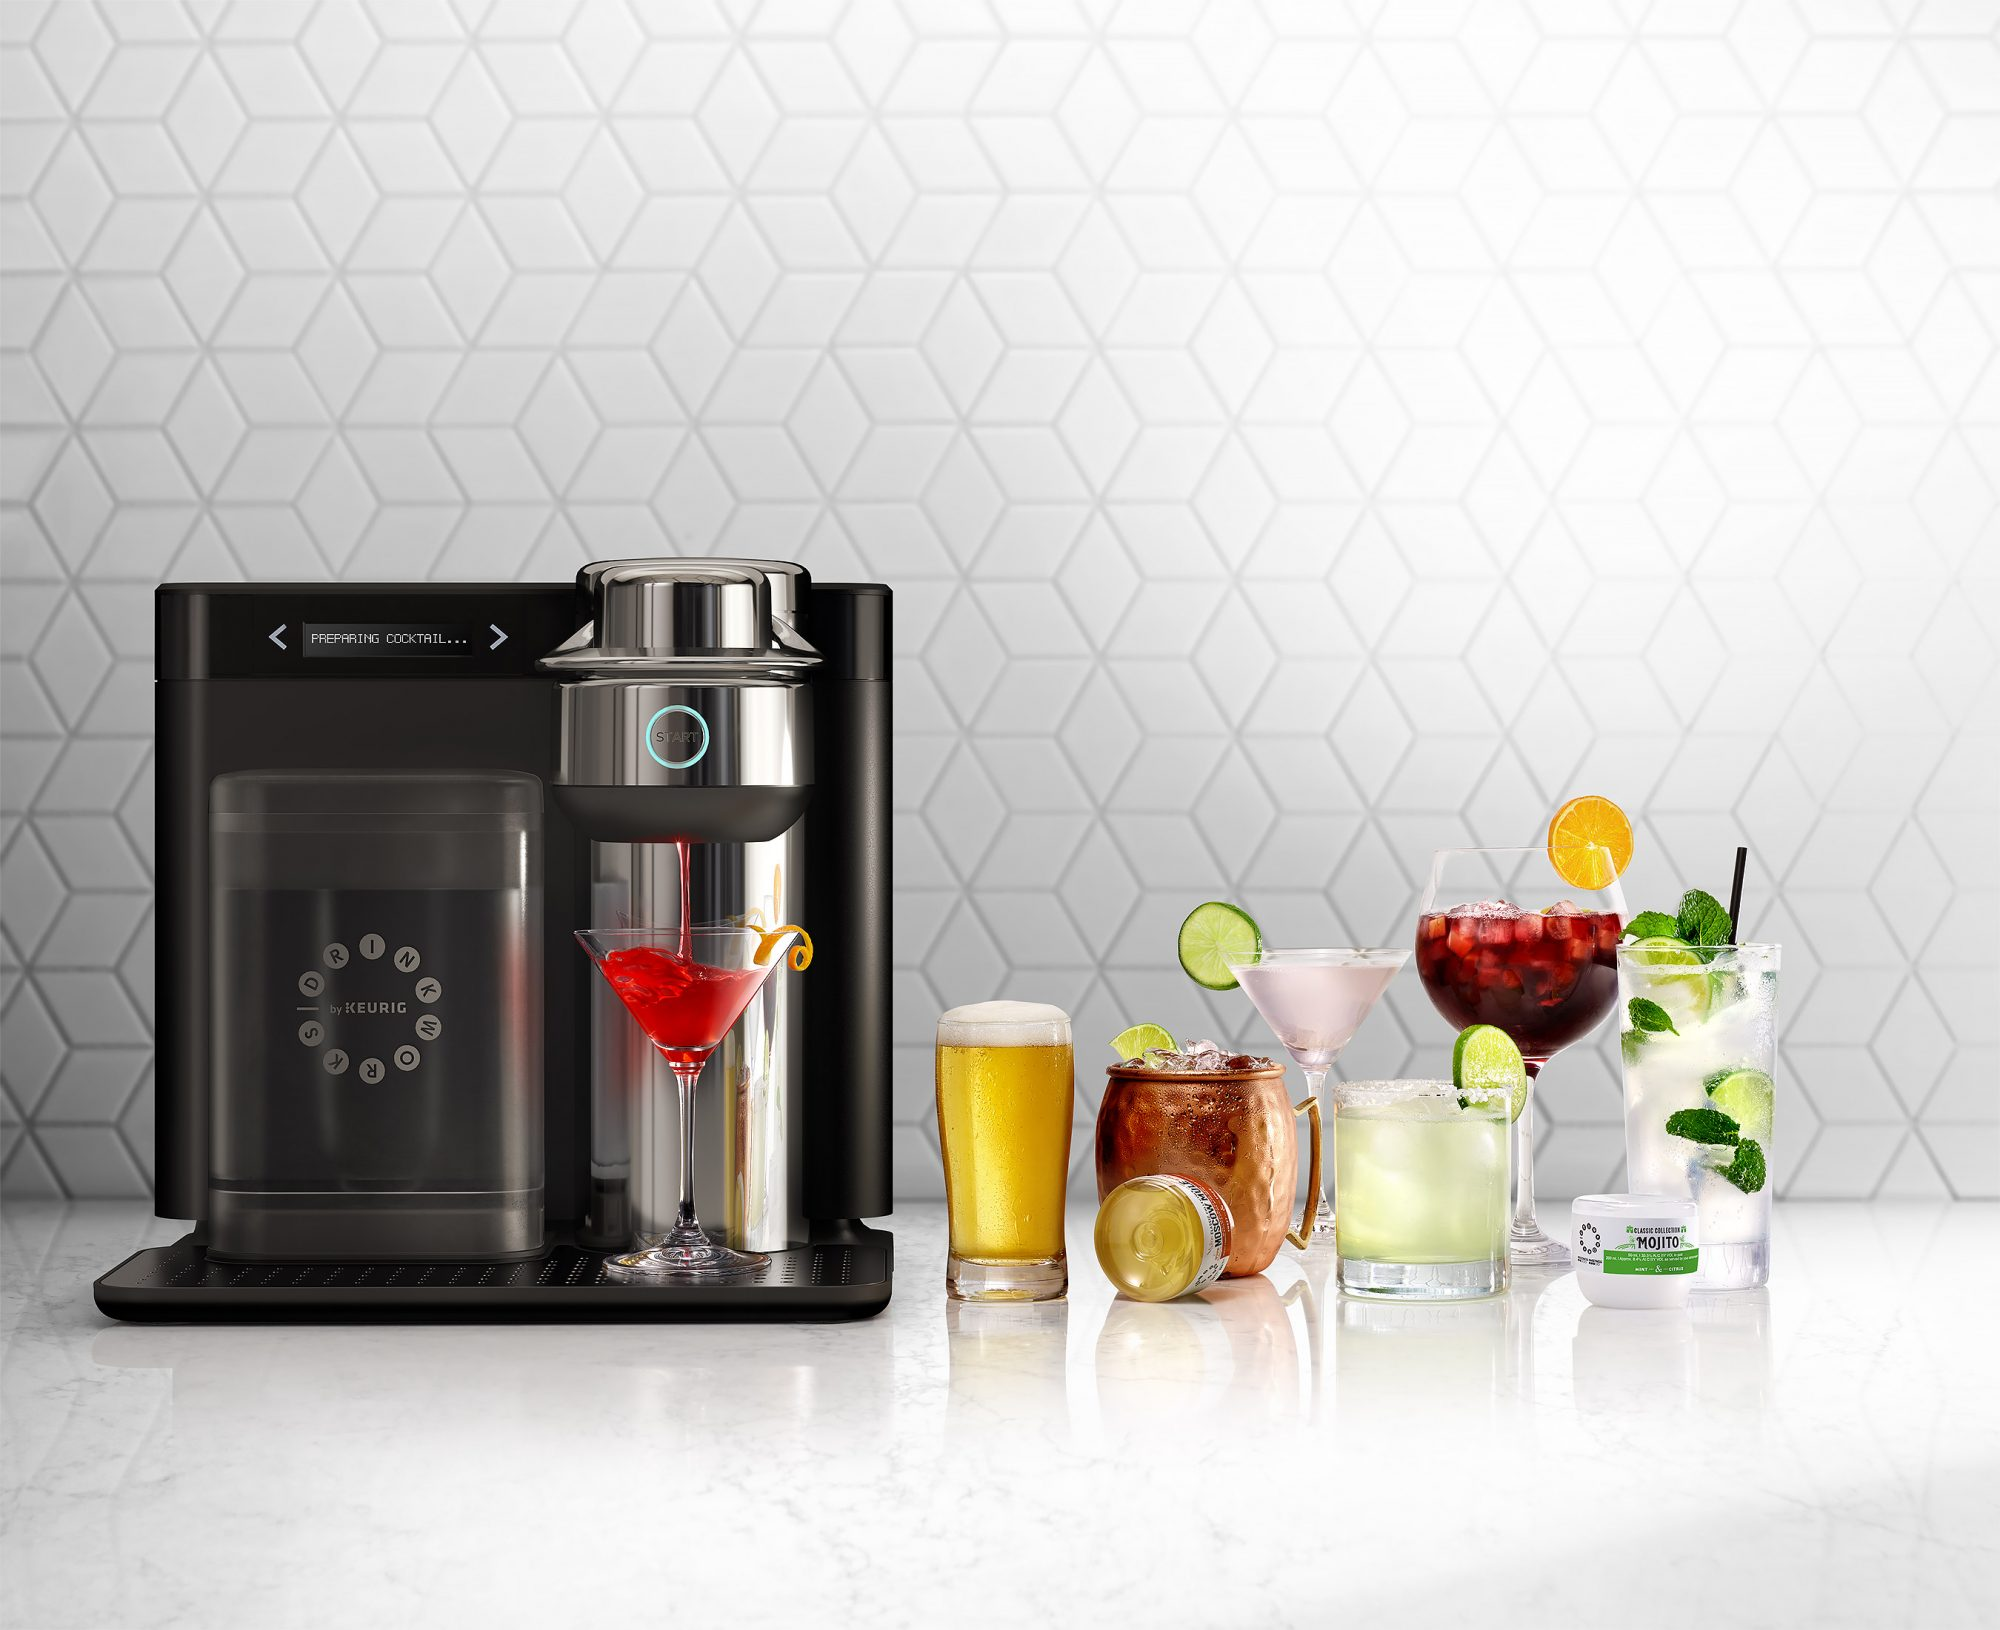 This New Keurig Machine Makes Cocktails Like Moscow Mules, Margaritas and Cosmos keurig-1